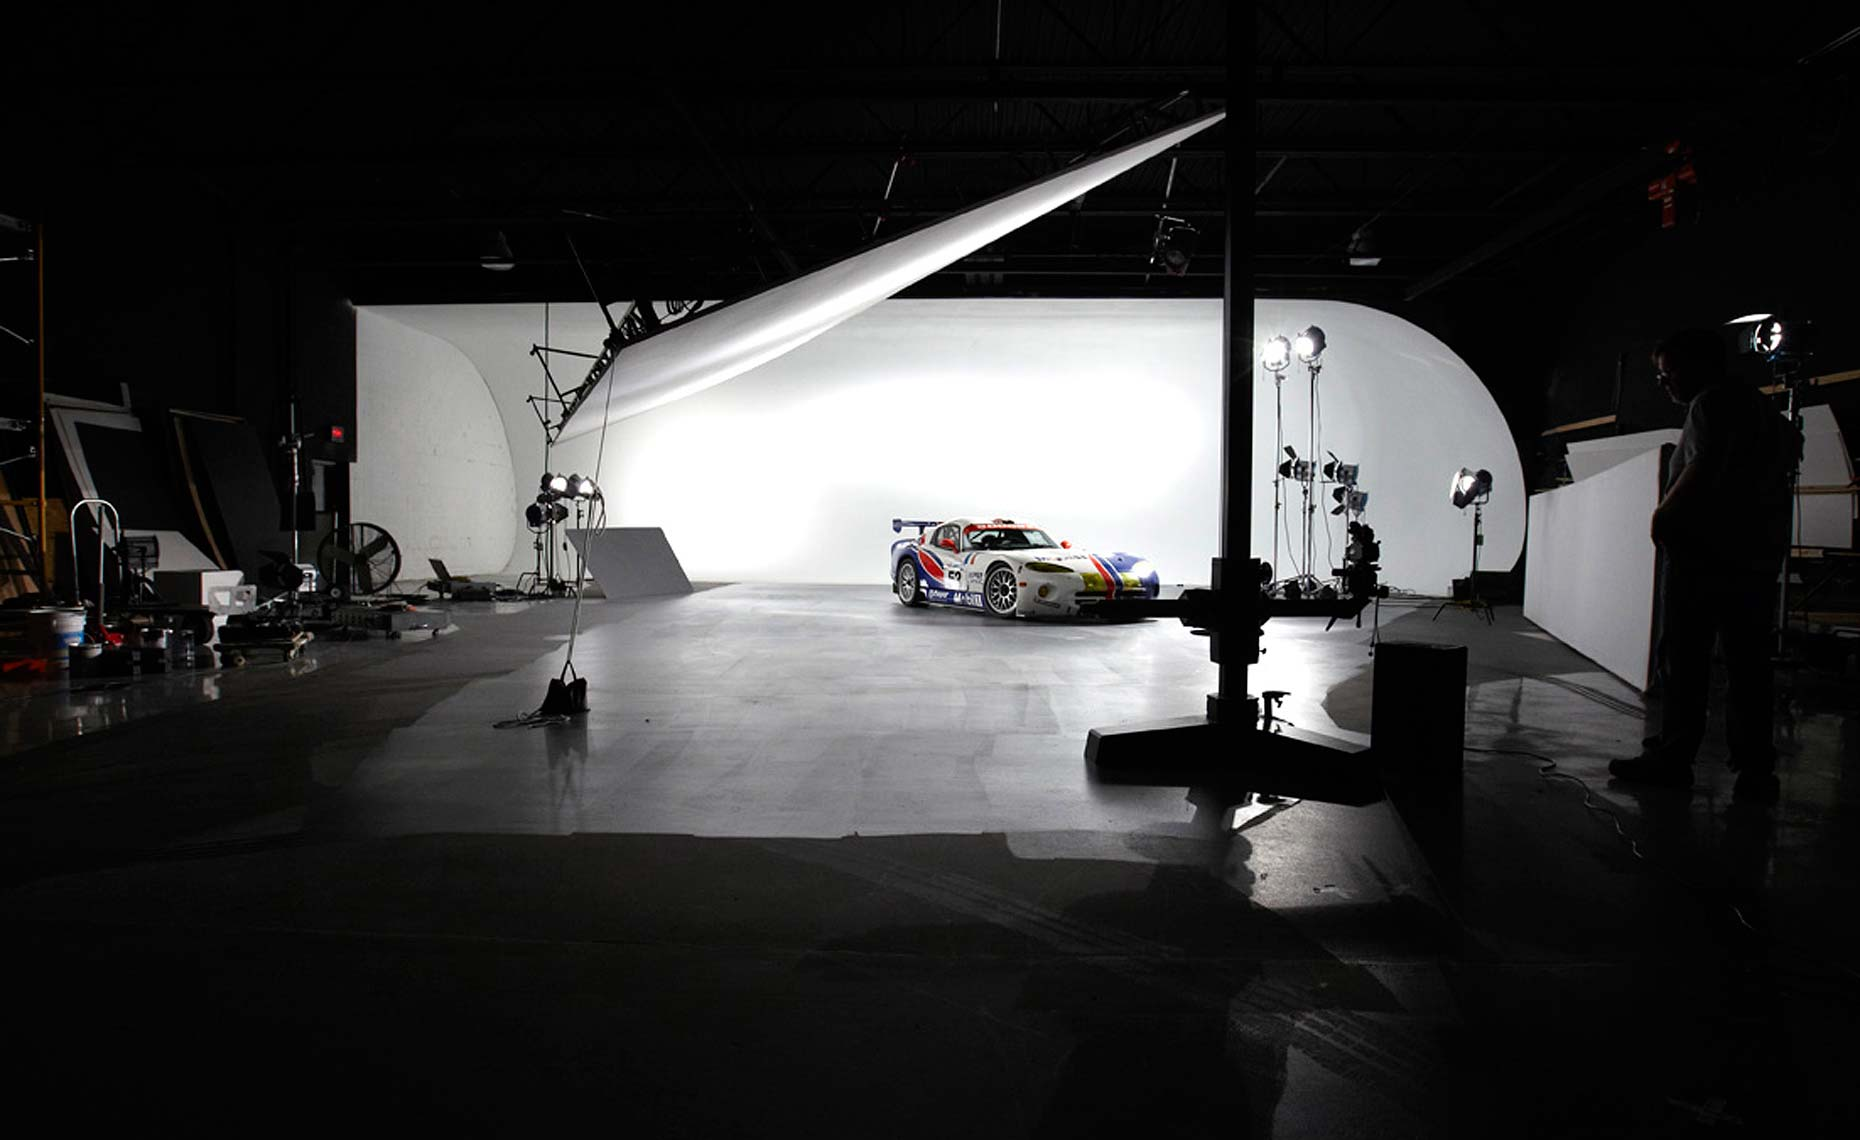 2013 viper-srt-behind the scenes-studio-7.jpg